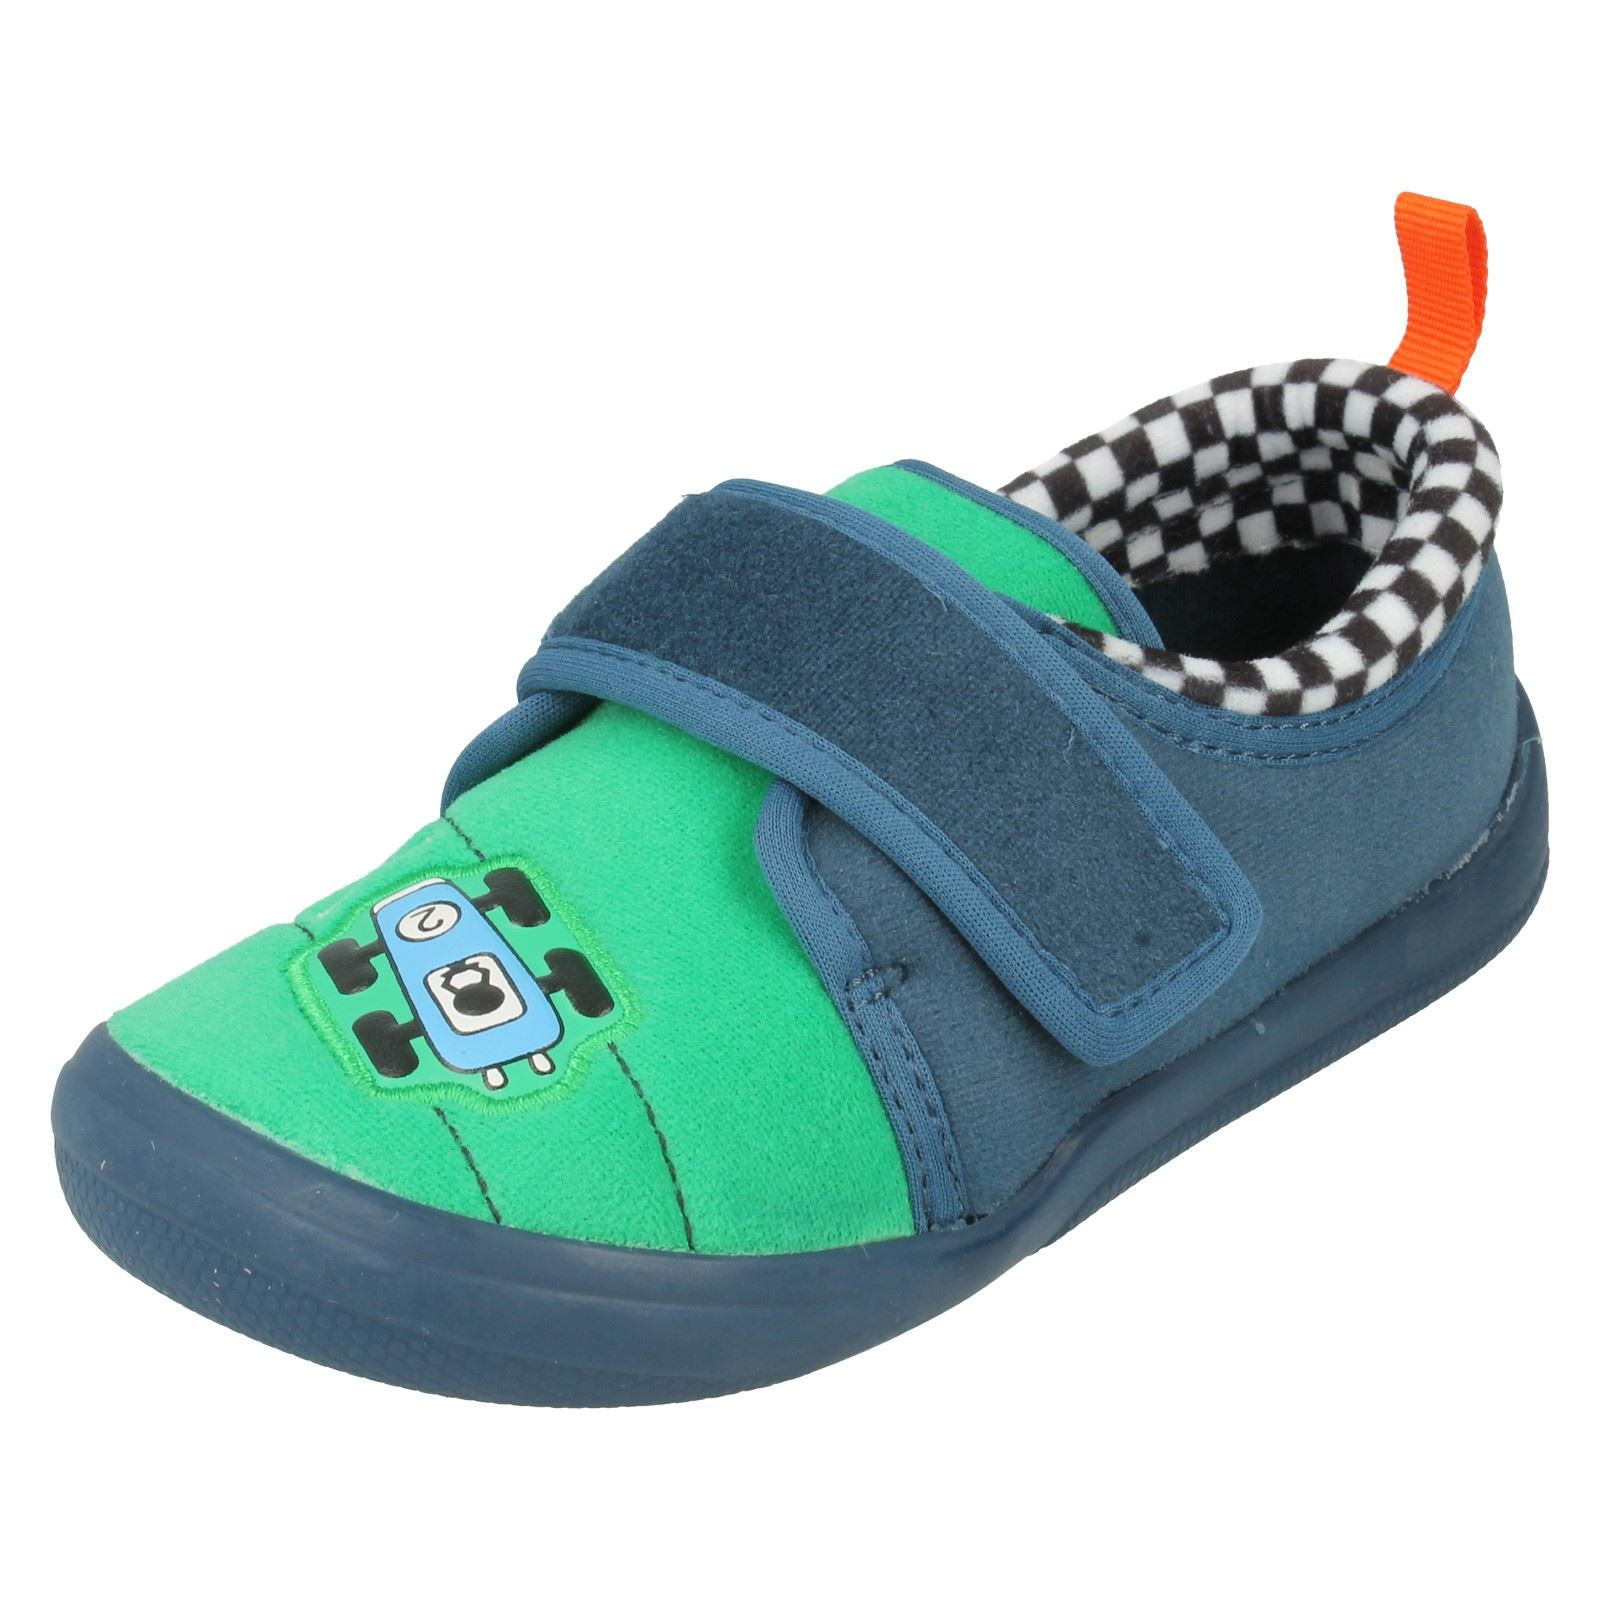 Boys Clarks Slippers The Style - Cuba pace